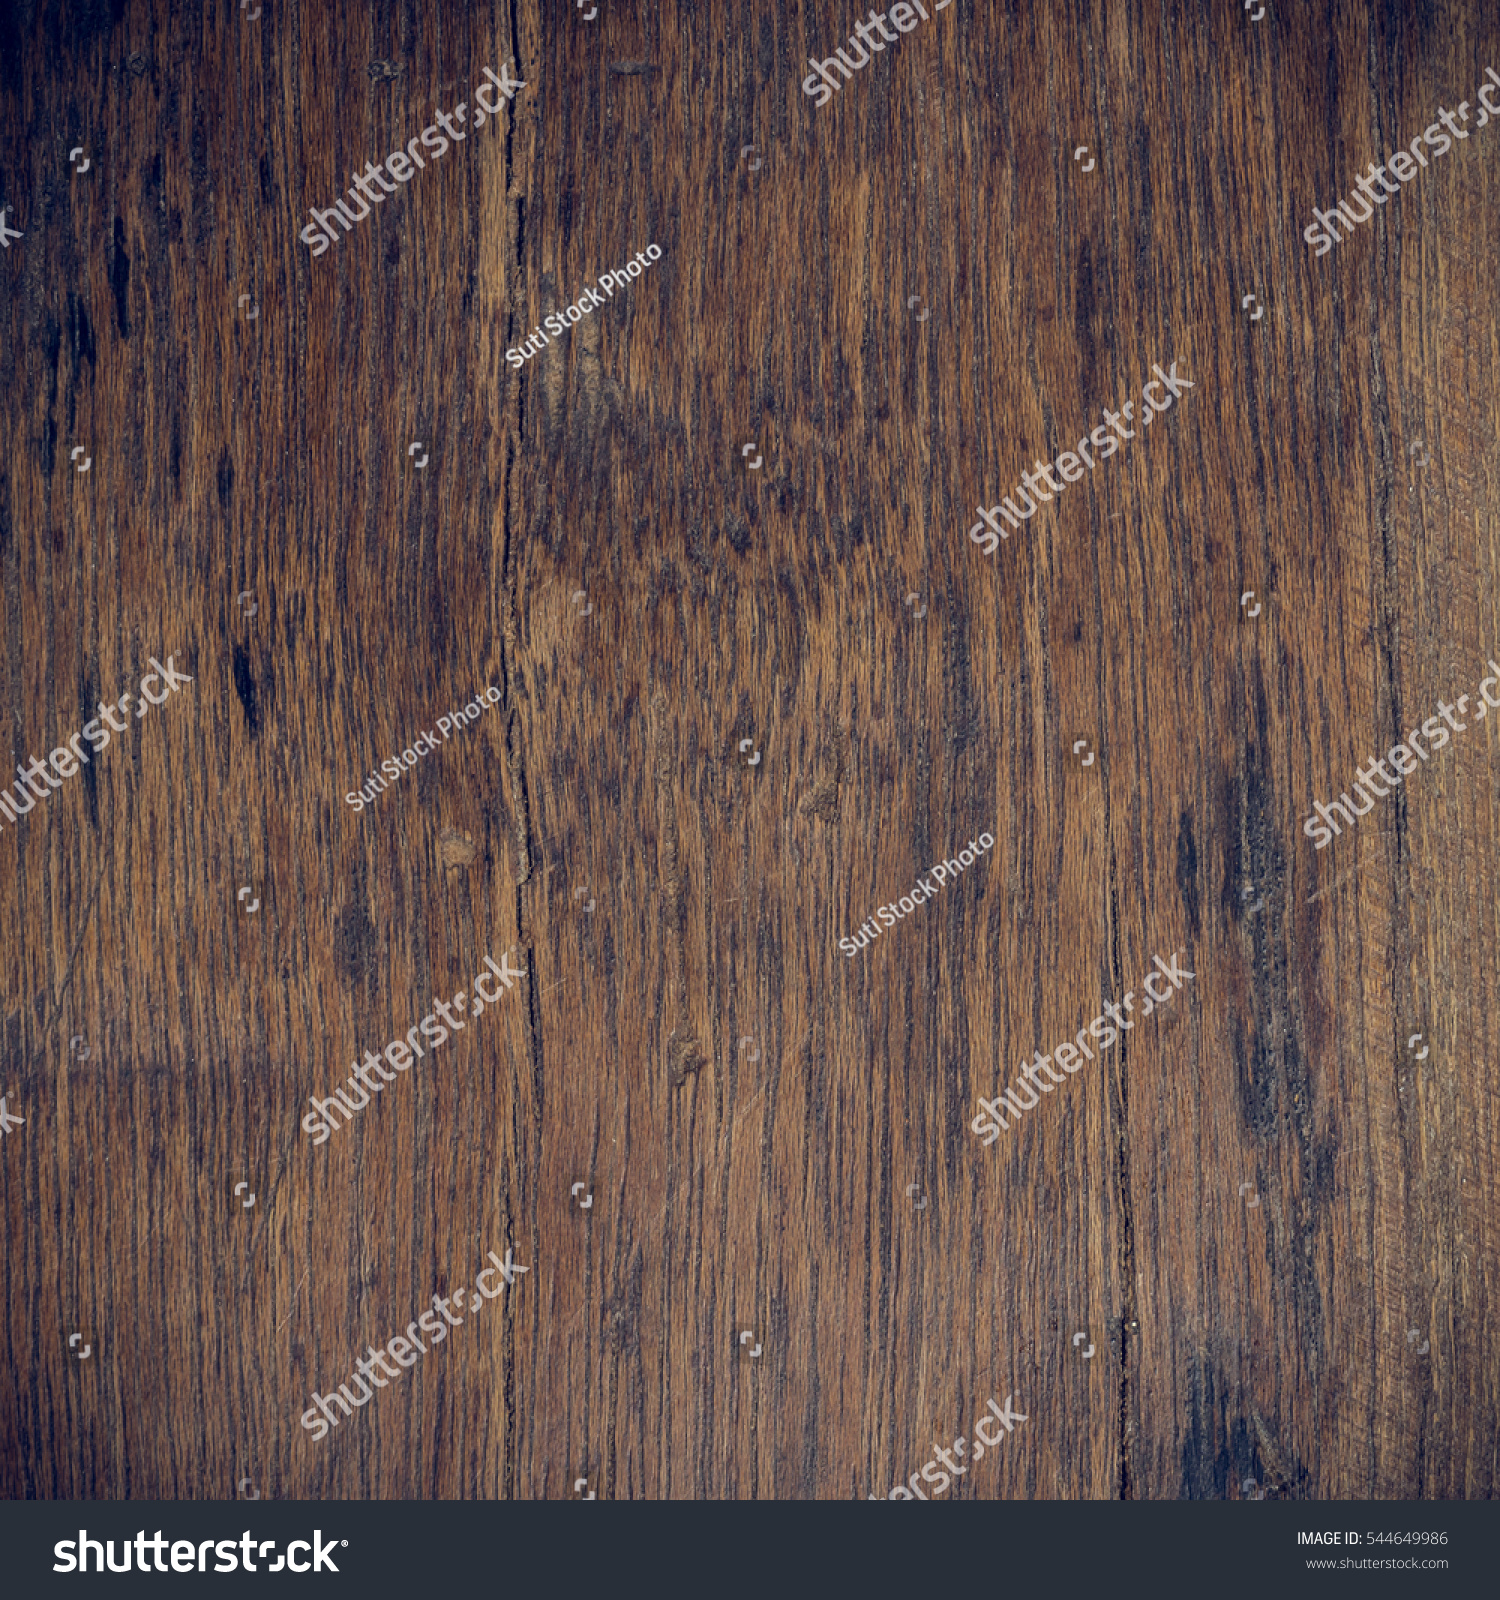 Wood table top texture - Wood Brown Grain Texture Background Top View Of Wooden Table